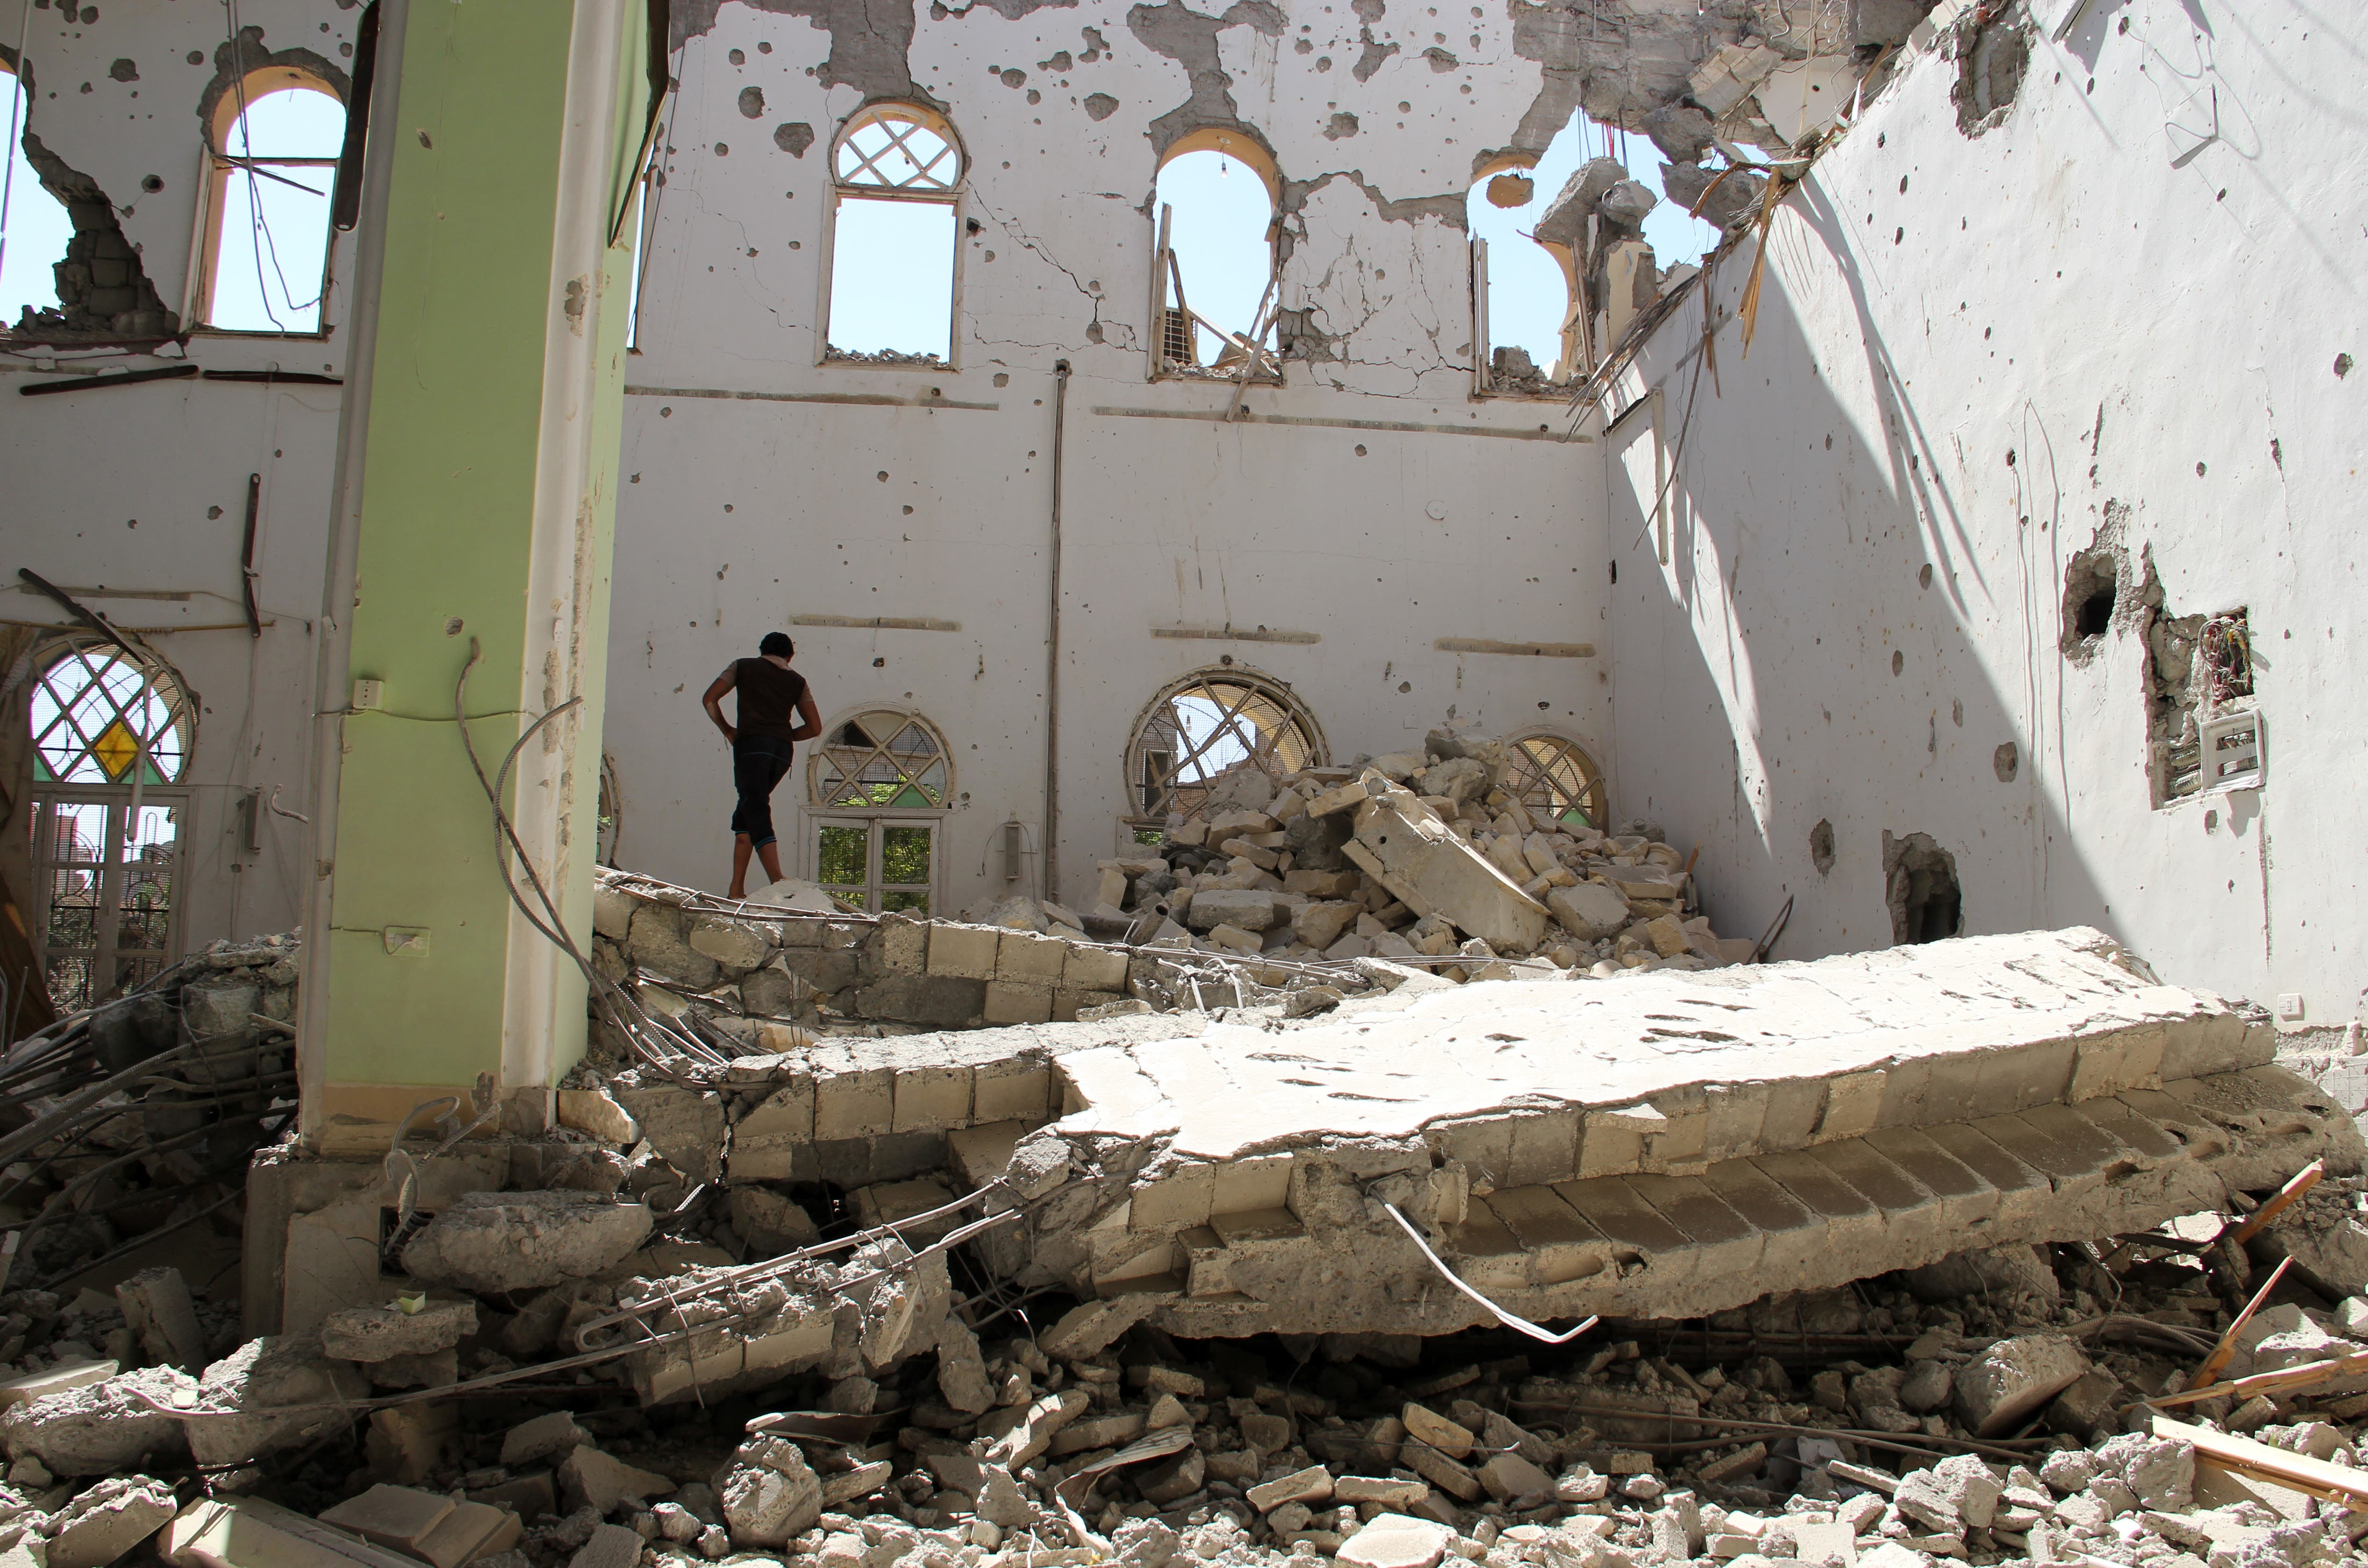 A man stands in the rubble of the Othman mosque, in Syria's eastern town of Deir Ezzor, on July 24. AFP / KARAM JAMAL